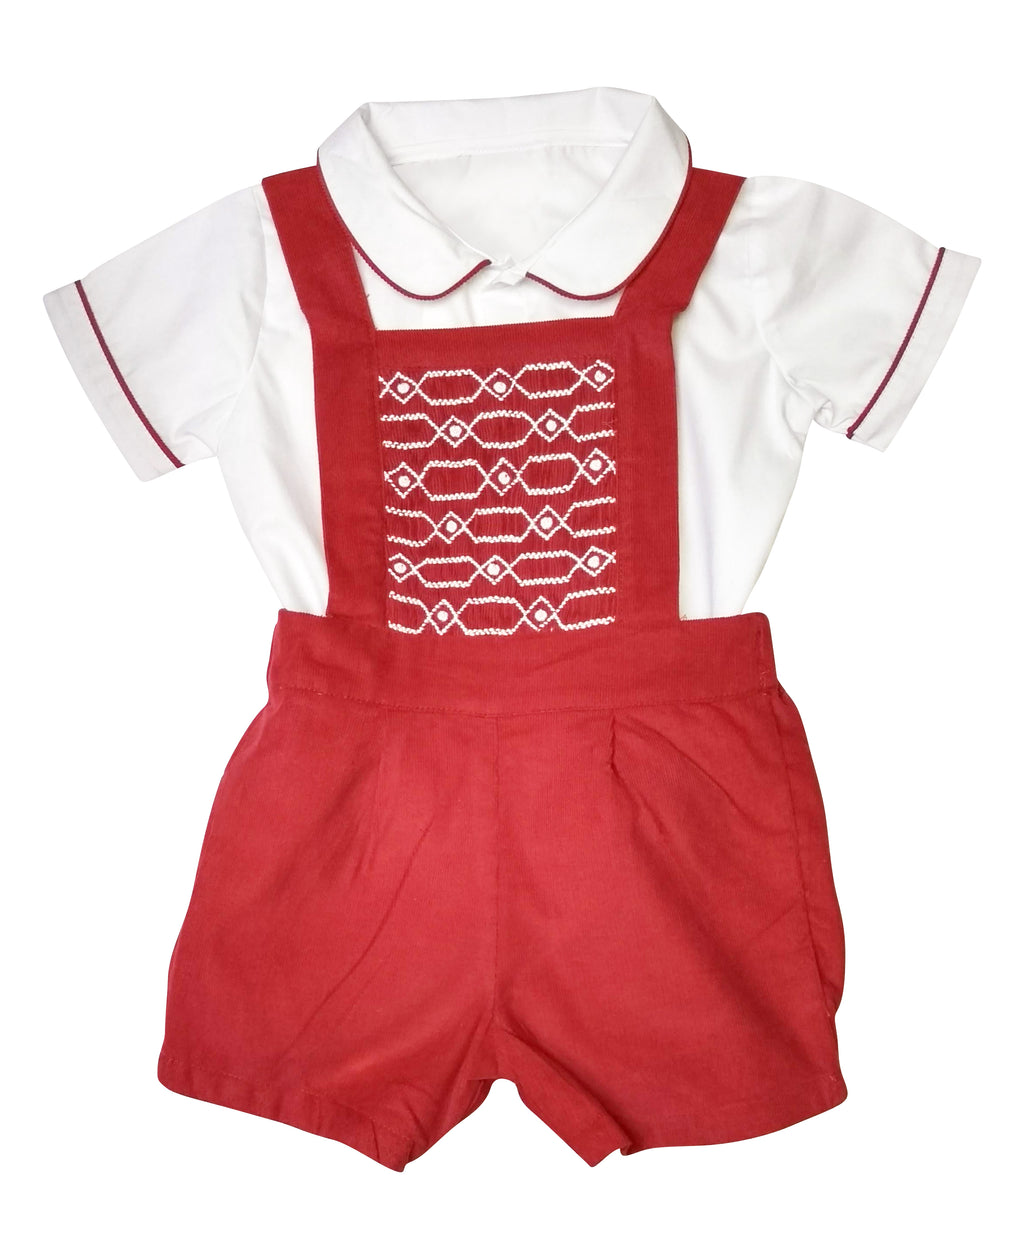 Red Cord Hand Smocked Boy's Overall Set - Little Threads Inc. Children's Clothing